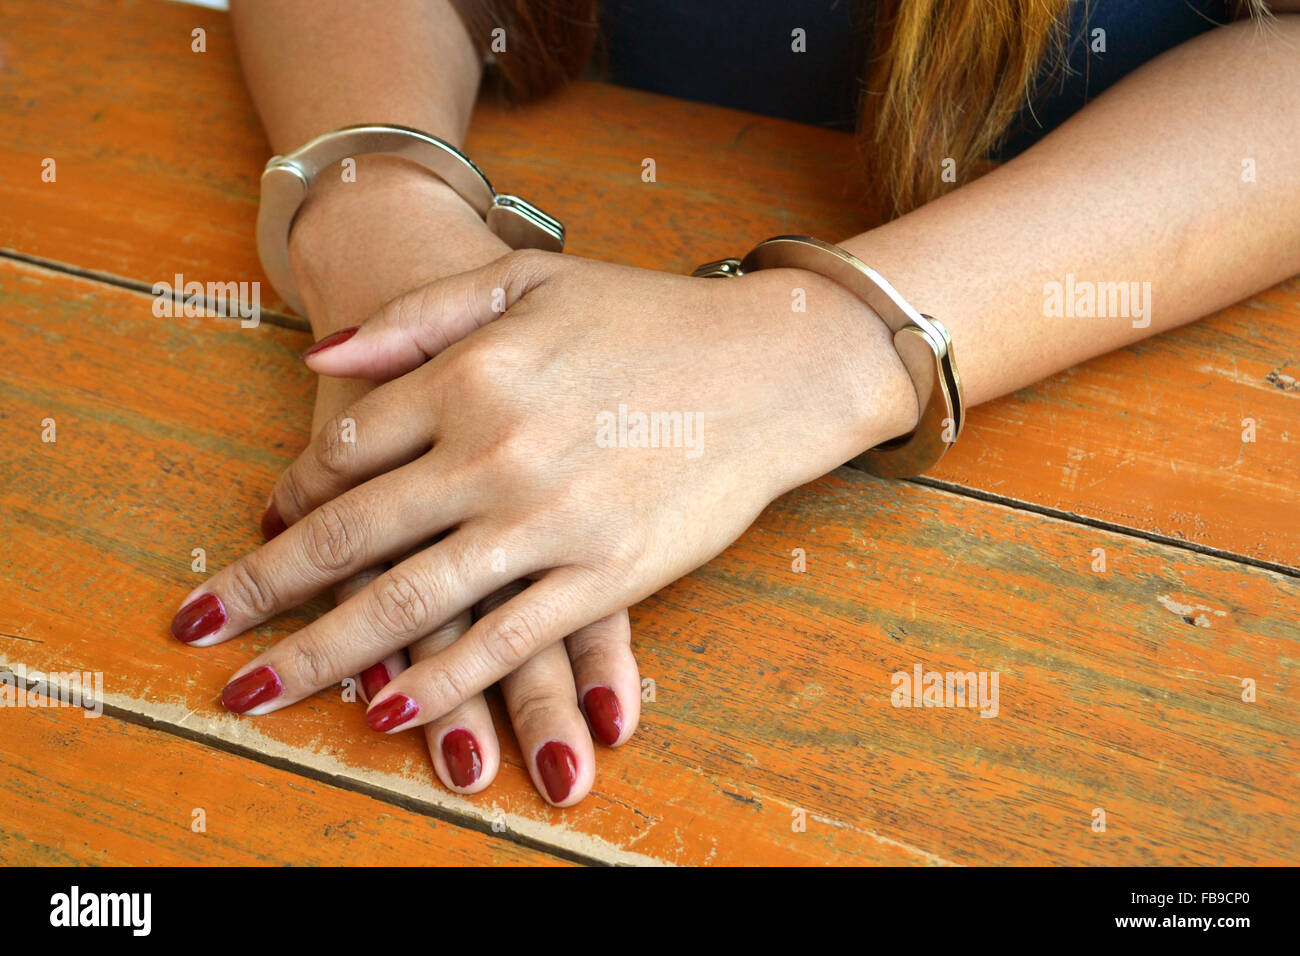 Female prisoner being investigated with hands cuffed on a table - Stock Image